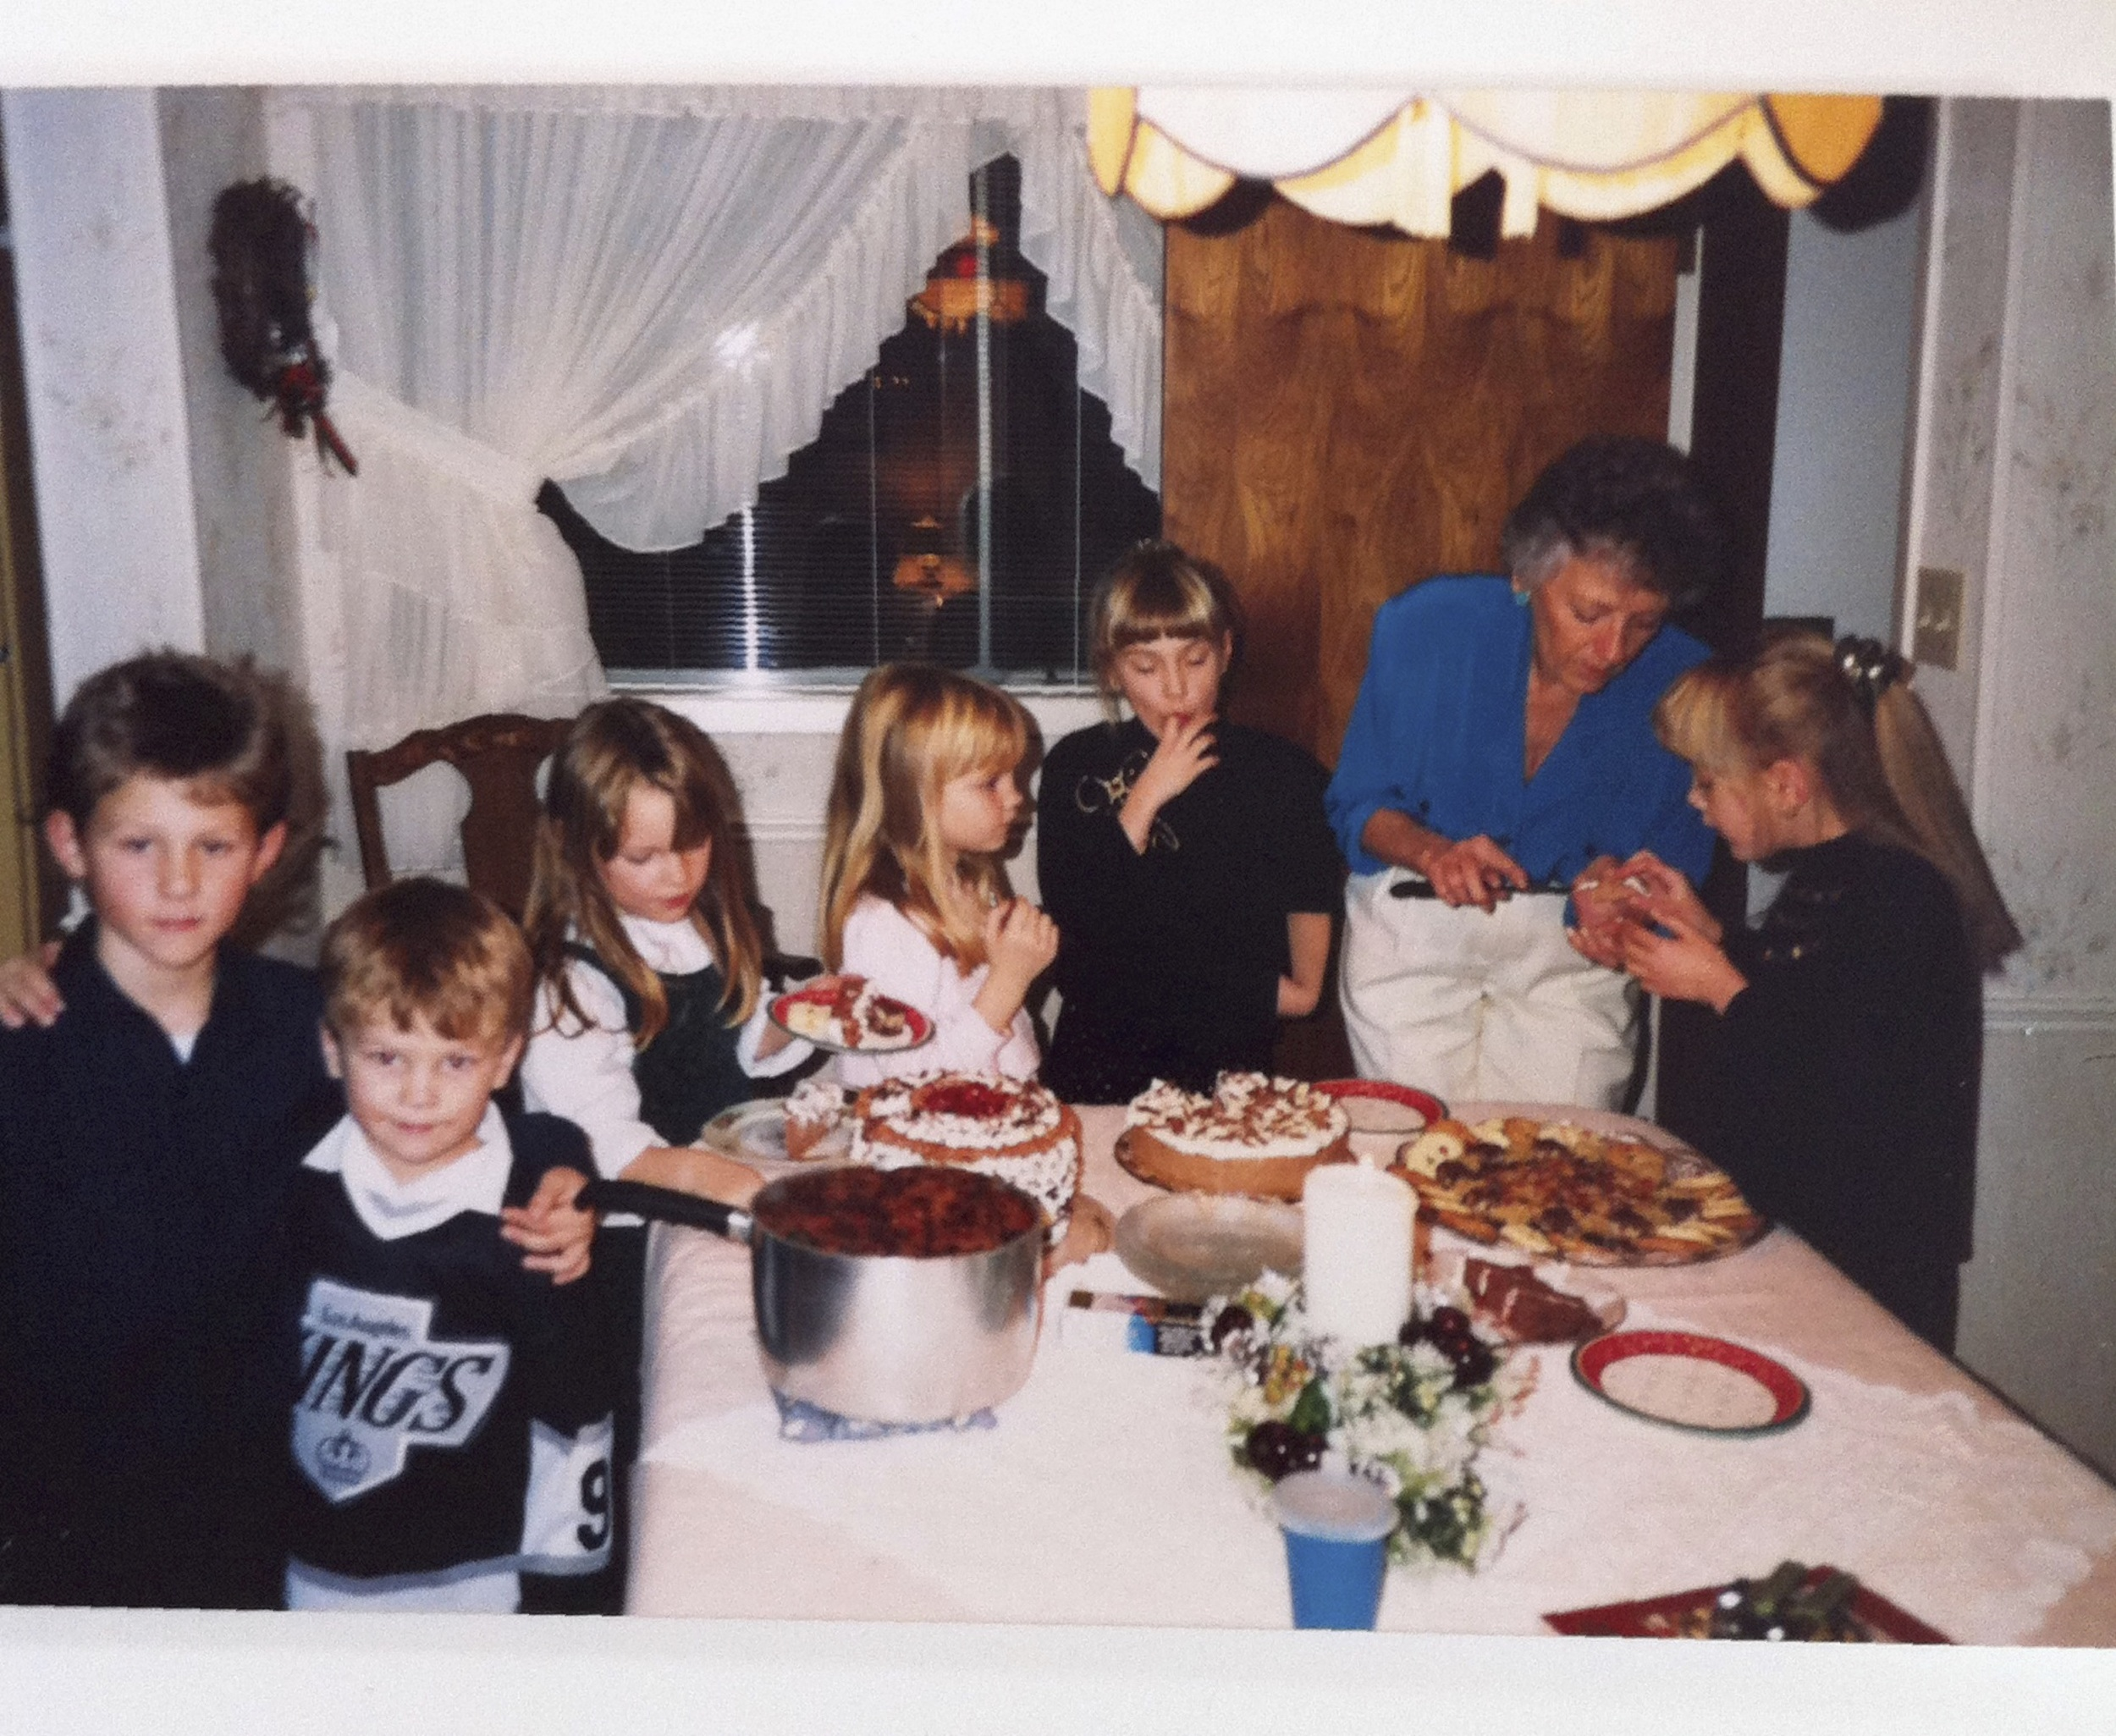 My Grandma, Joanne, serving up tasty desserts to me and my cousins, 'back in the day'. I'm the one who can't stop herself from tasting the food.